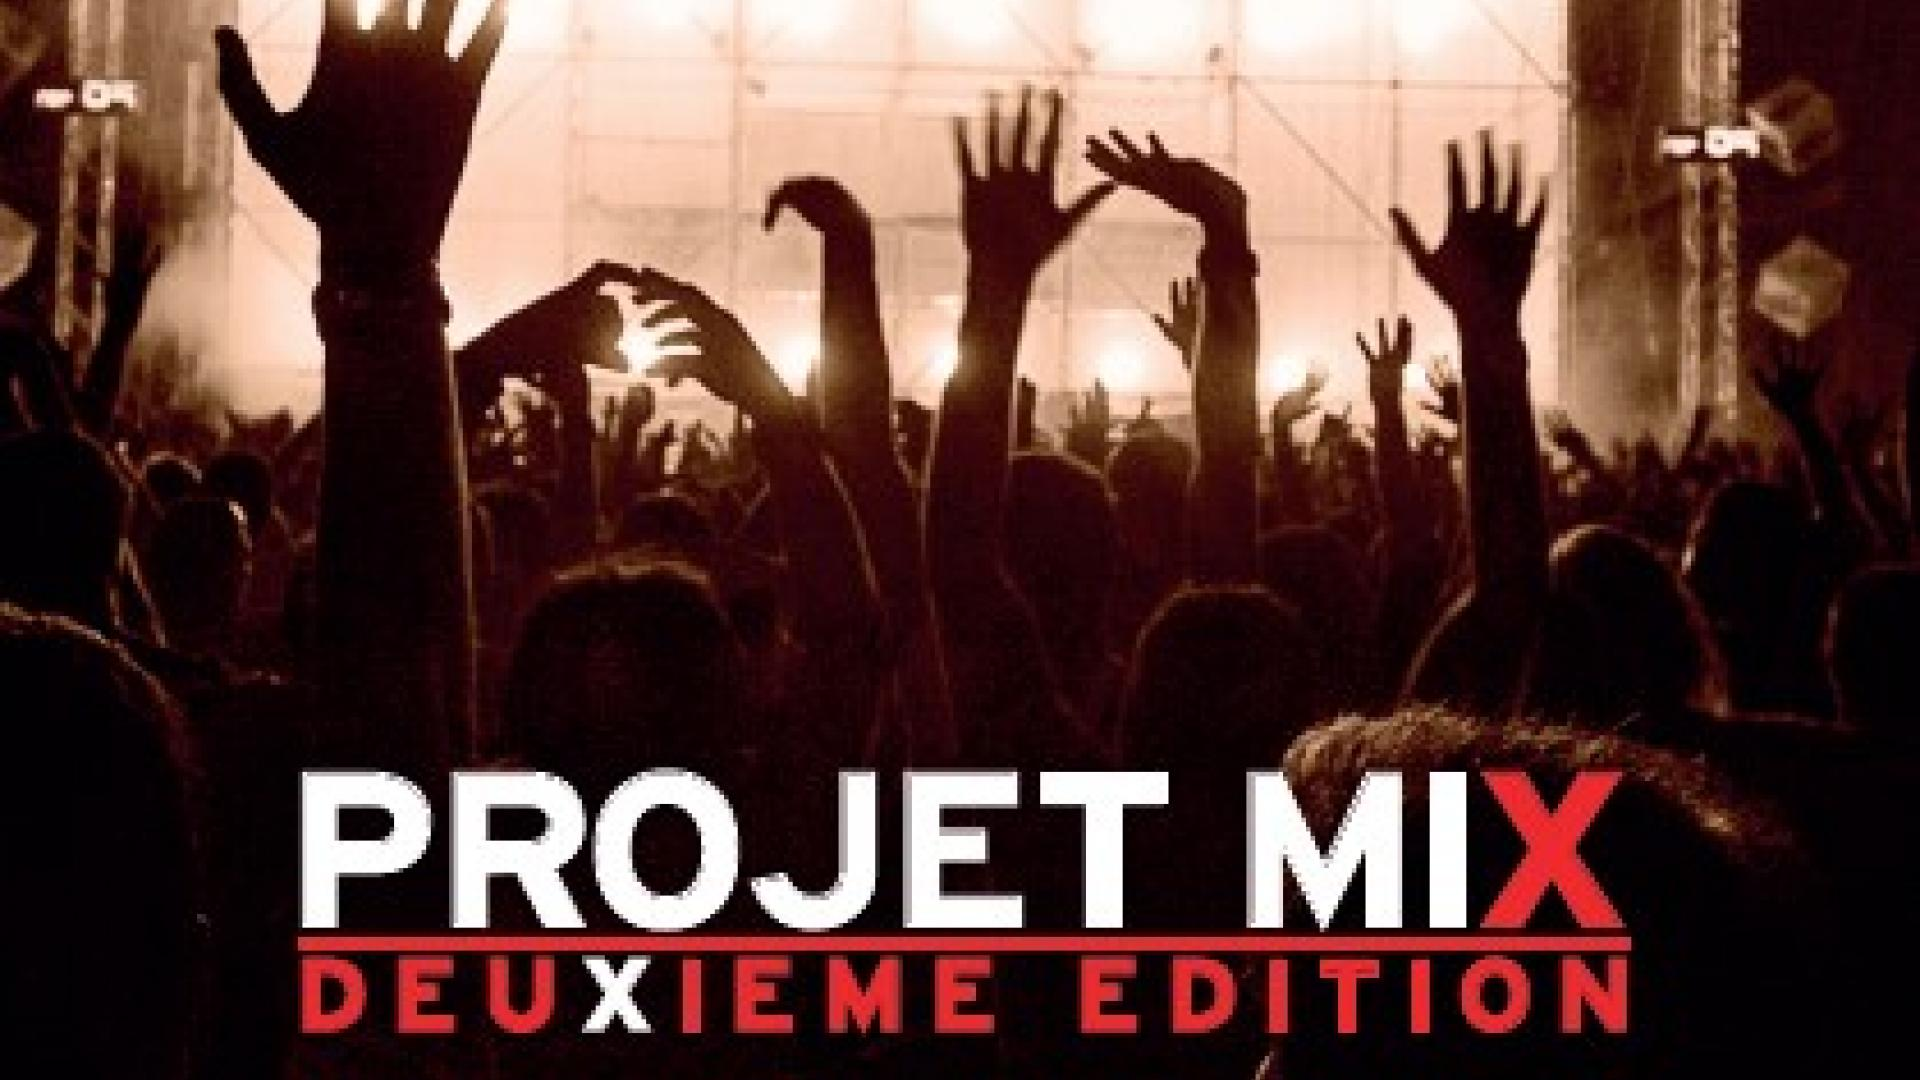 Pojet MiX 2